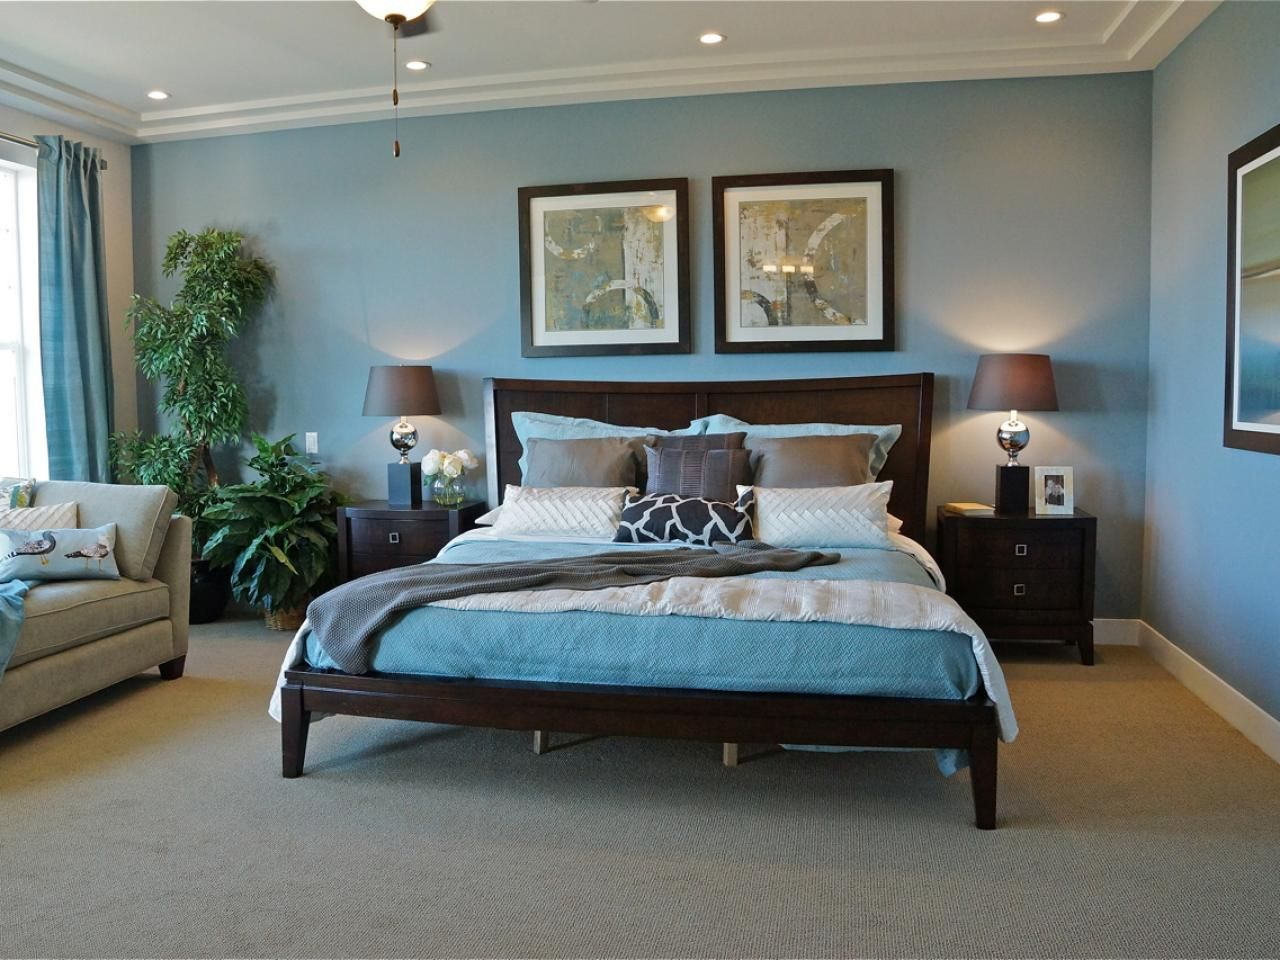 bedroom decor blue bedroom decor cream bedrooms master bedroom design